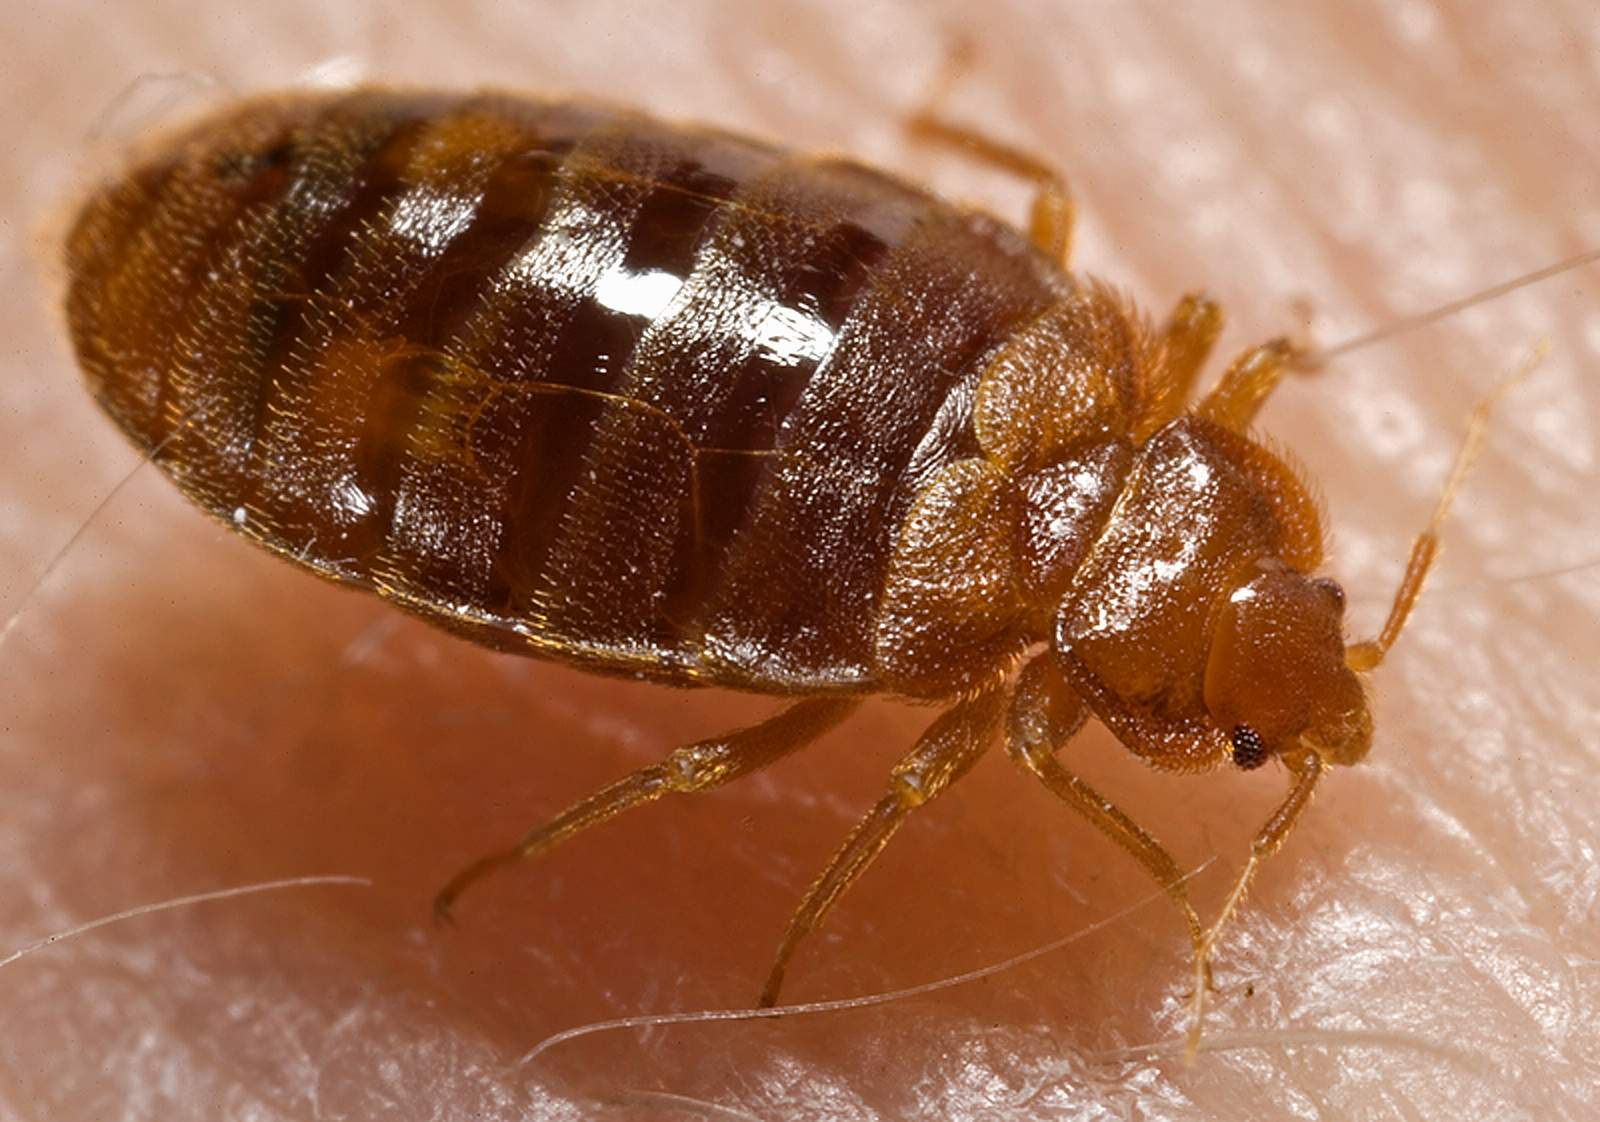 Trauma from bedbugs goes more than skin deep